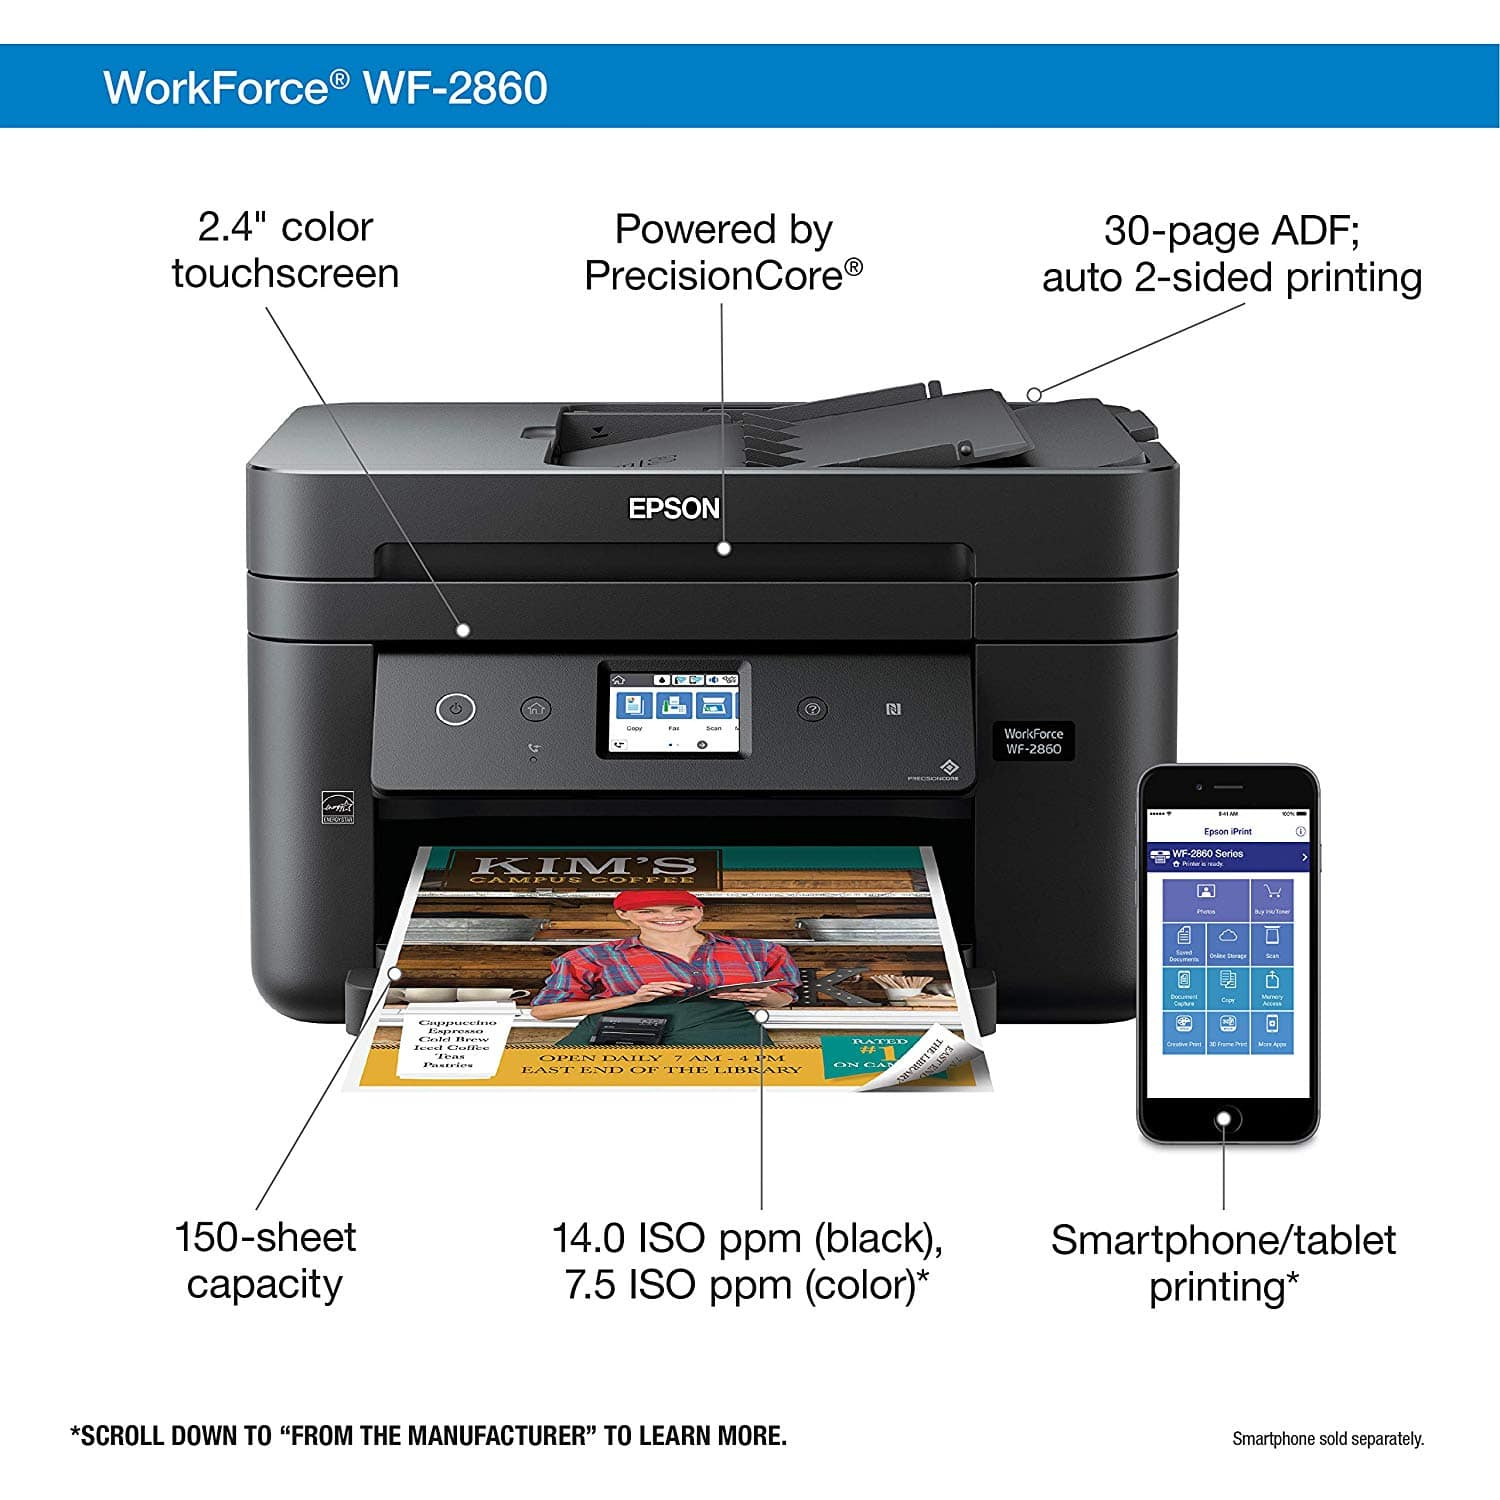 Epson Workforce WF-2860 All-in-One Wireless Color Printer with Scanner, Copier, Fax, Ethernet, Wi-Fi Direct and NFC - $49 @ Amazon